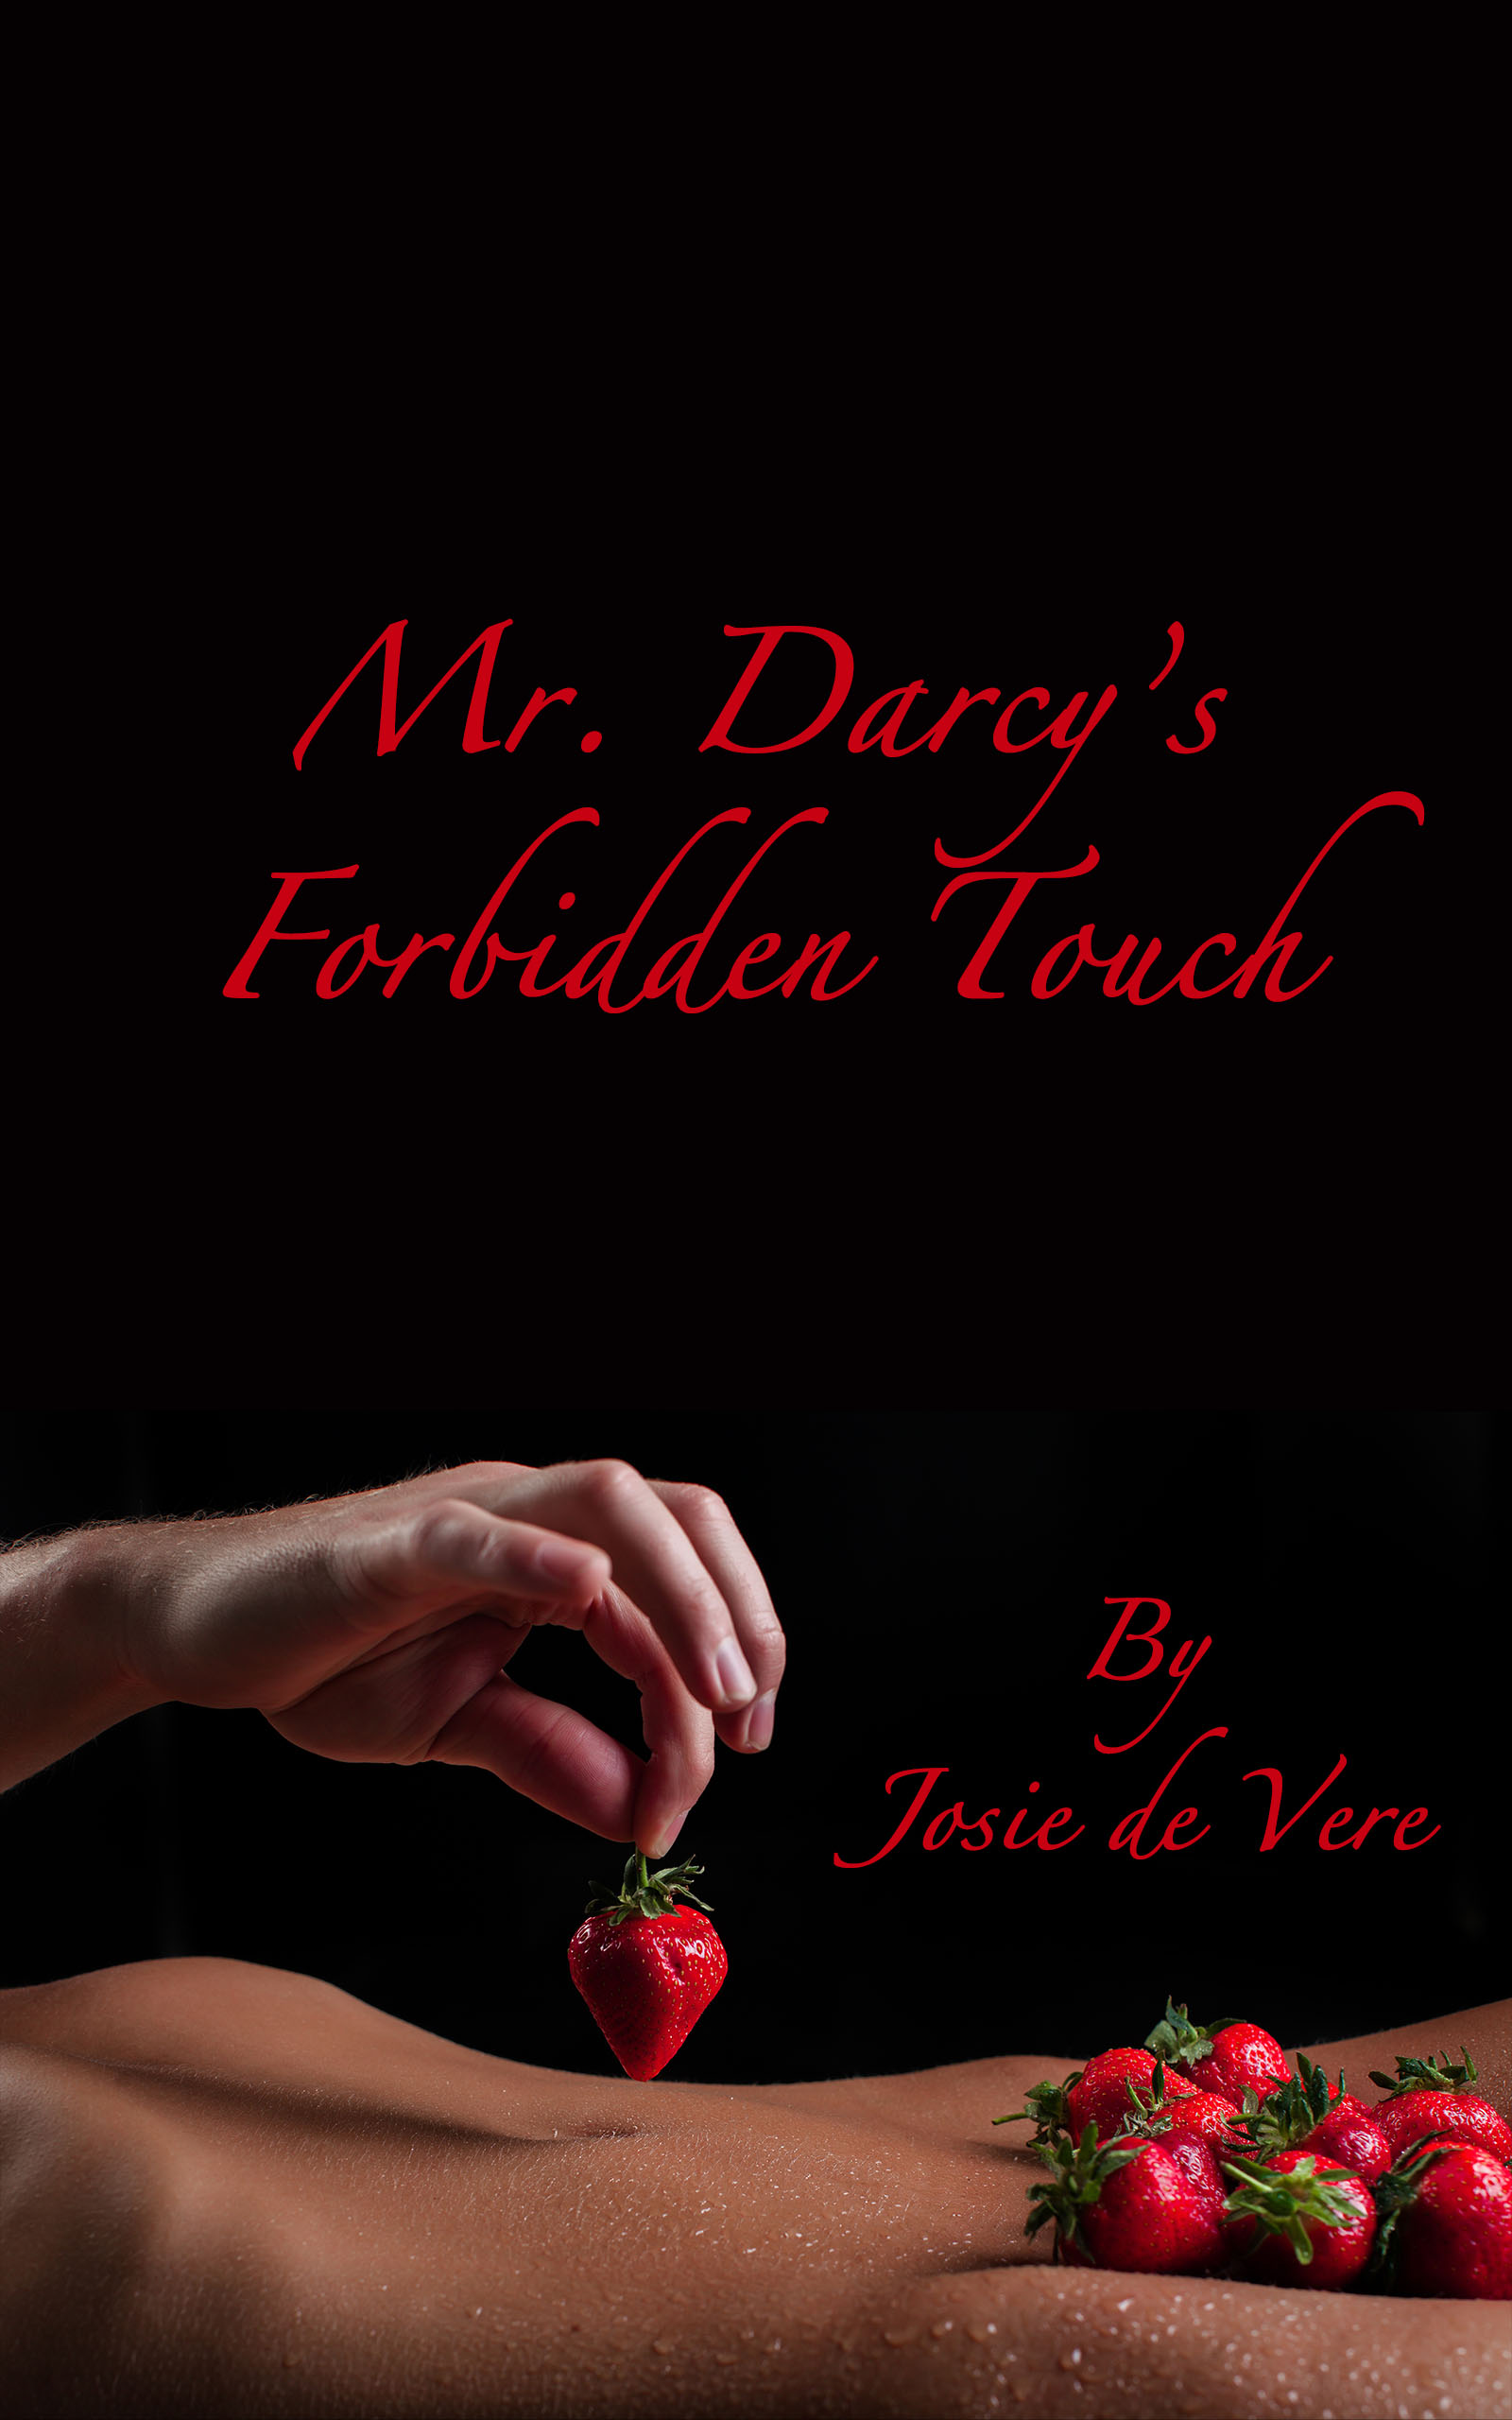 Mr. Darcy fan fiction literotica short sex stories available on Amazon Kindle